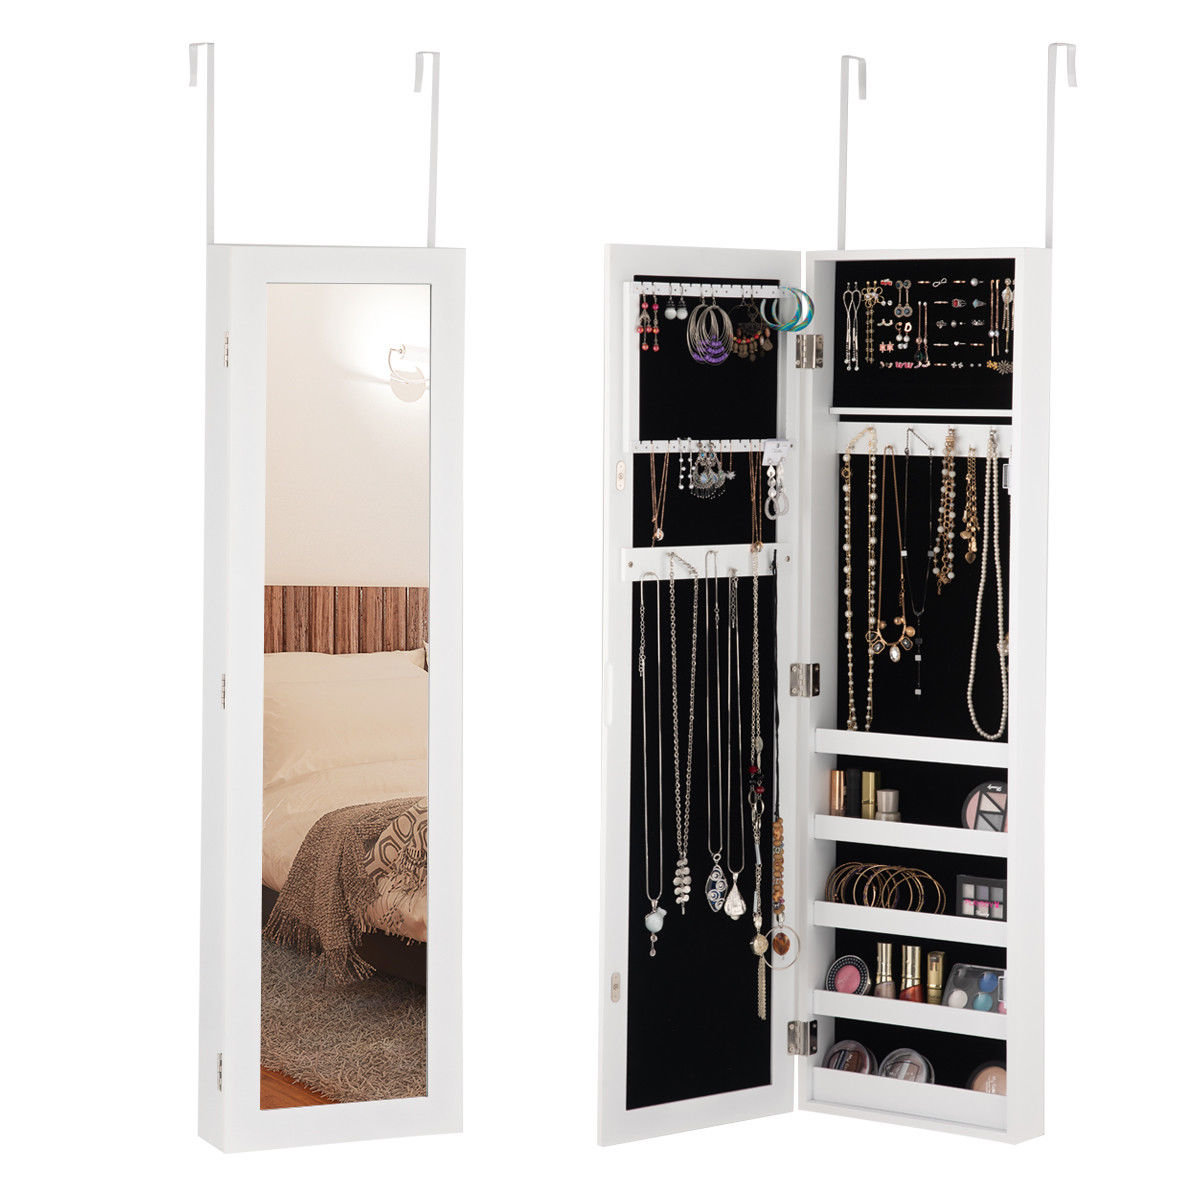 Costway Door Mounted Mirrored Jewelry Cabinet Armoire Storage Organizer